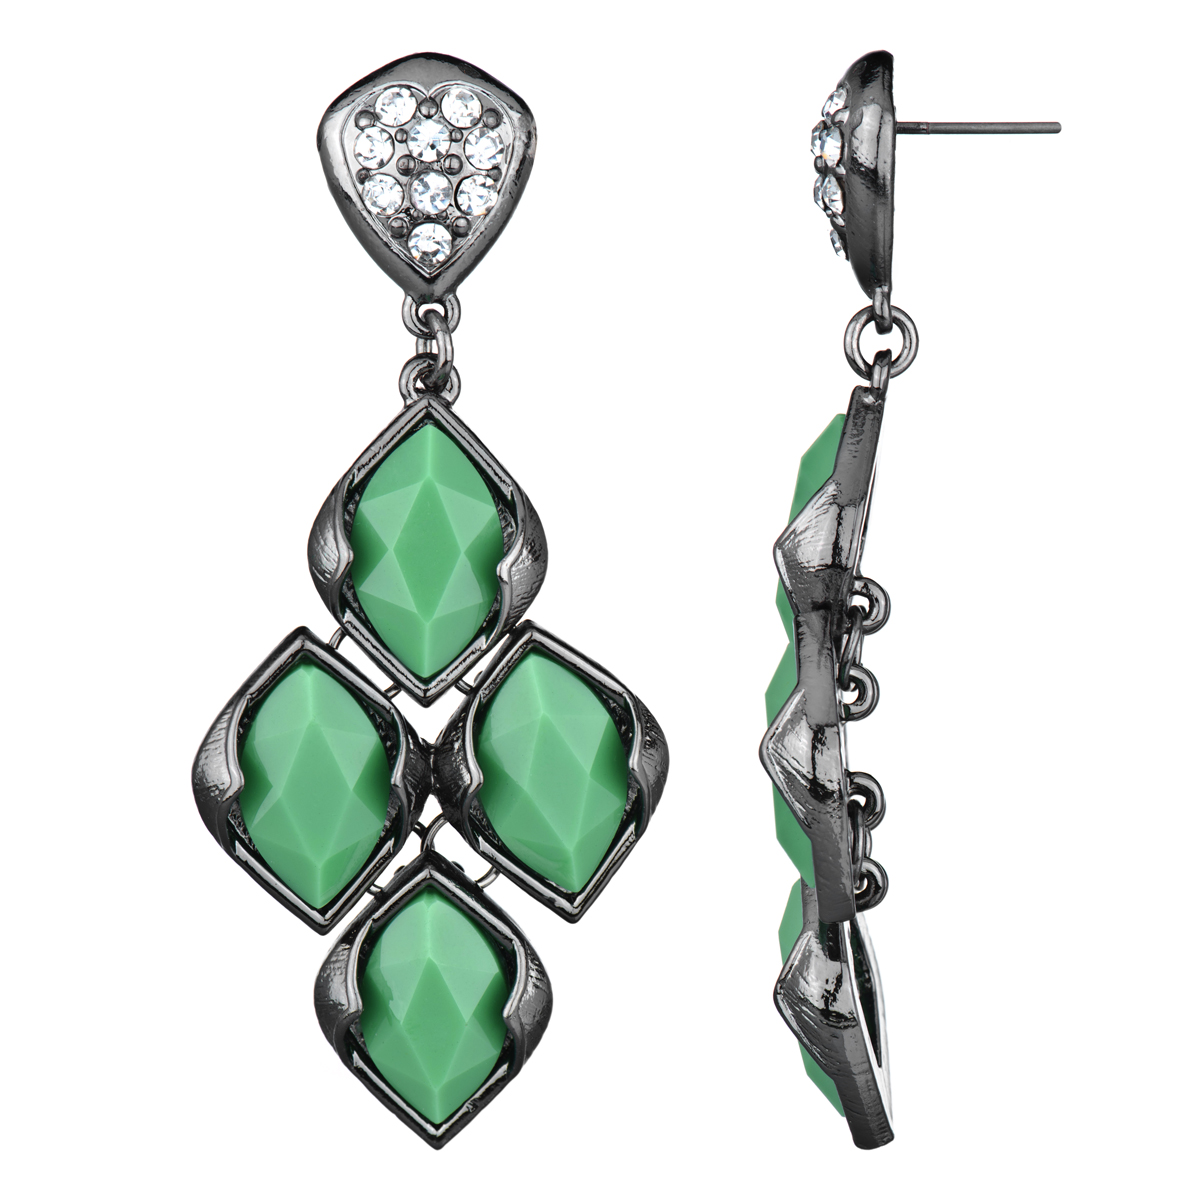 Dritas Gunmetal Green Chandelier Earrings – Chandelier Earring